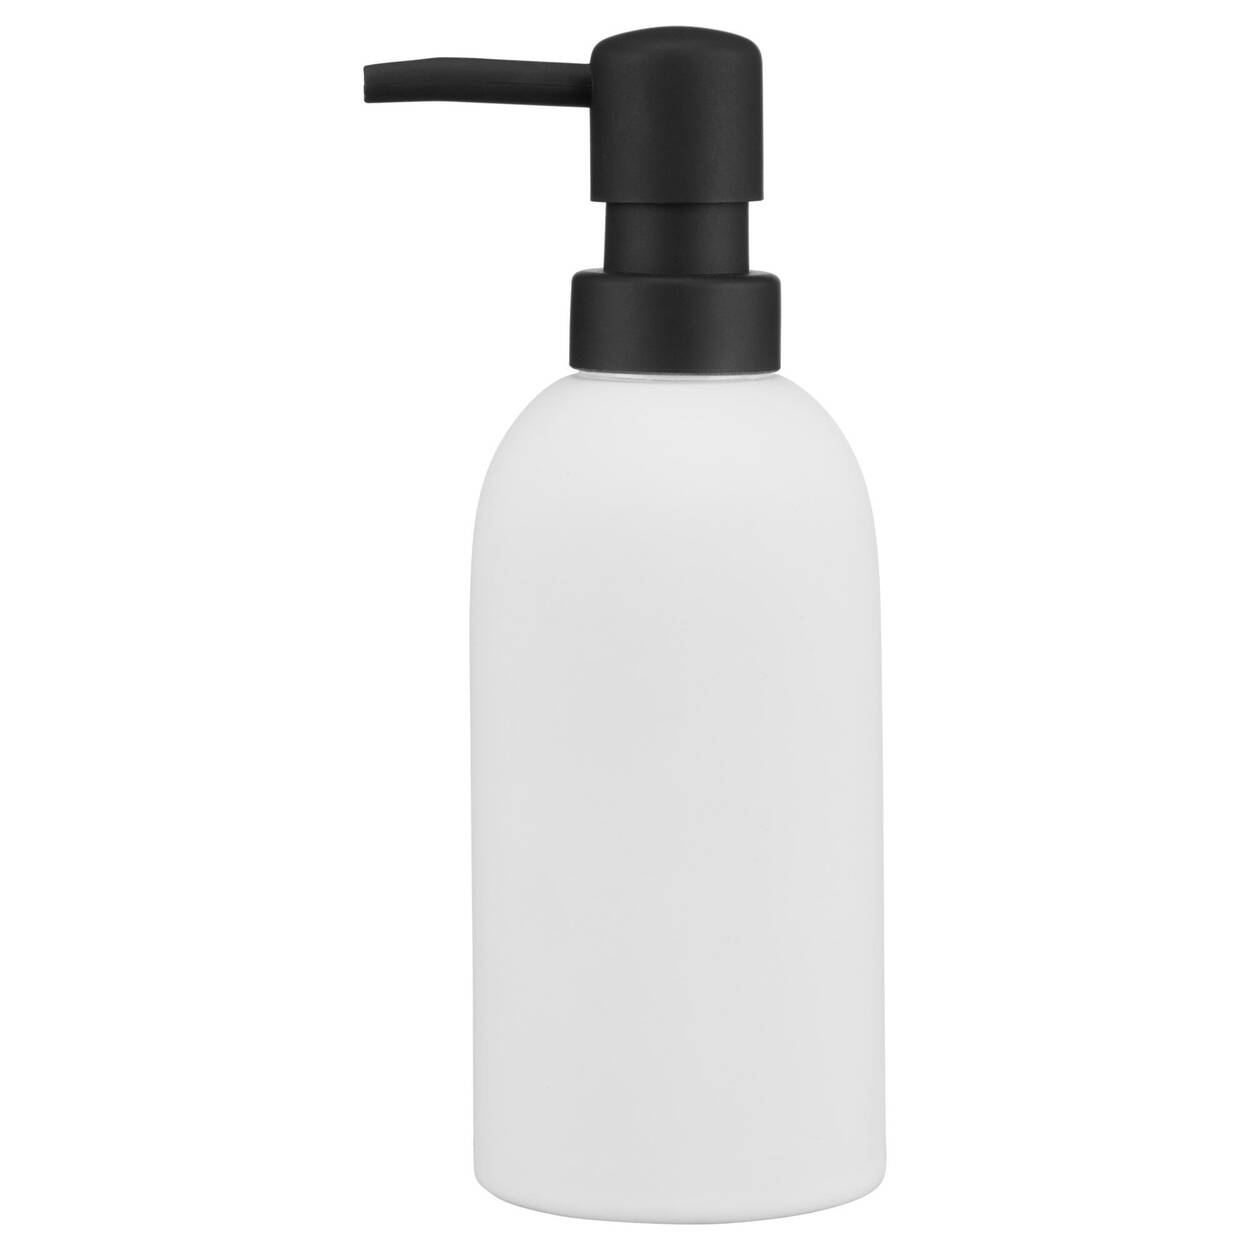 Rubber Coated Black and White Soap Dispenser